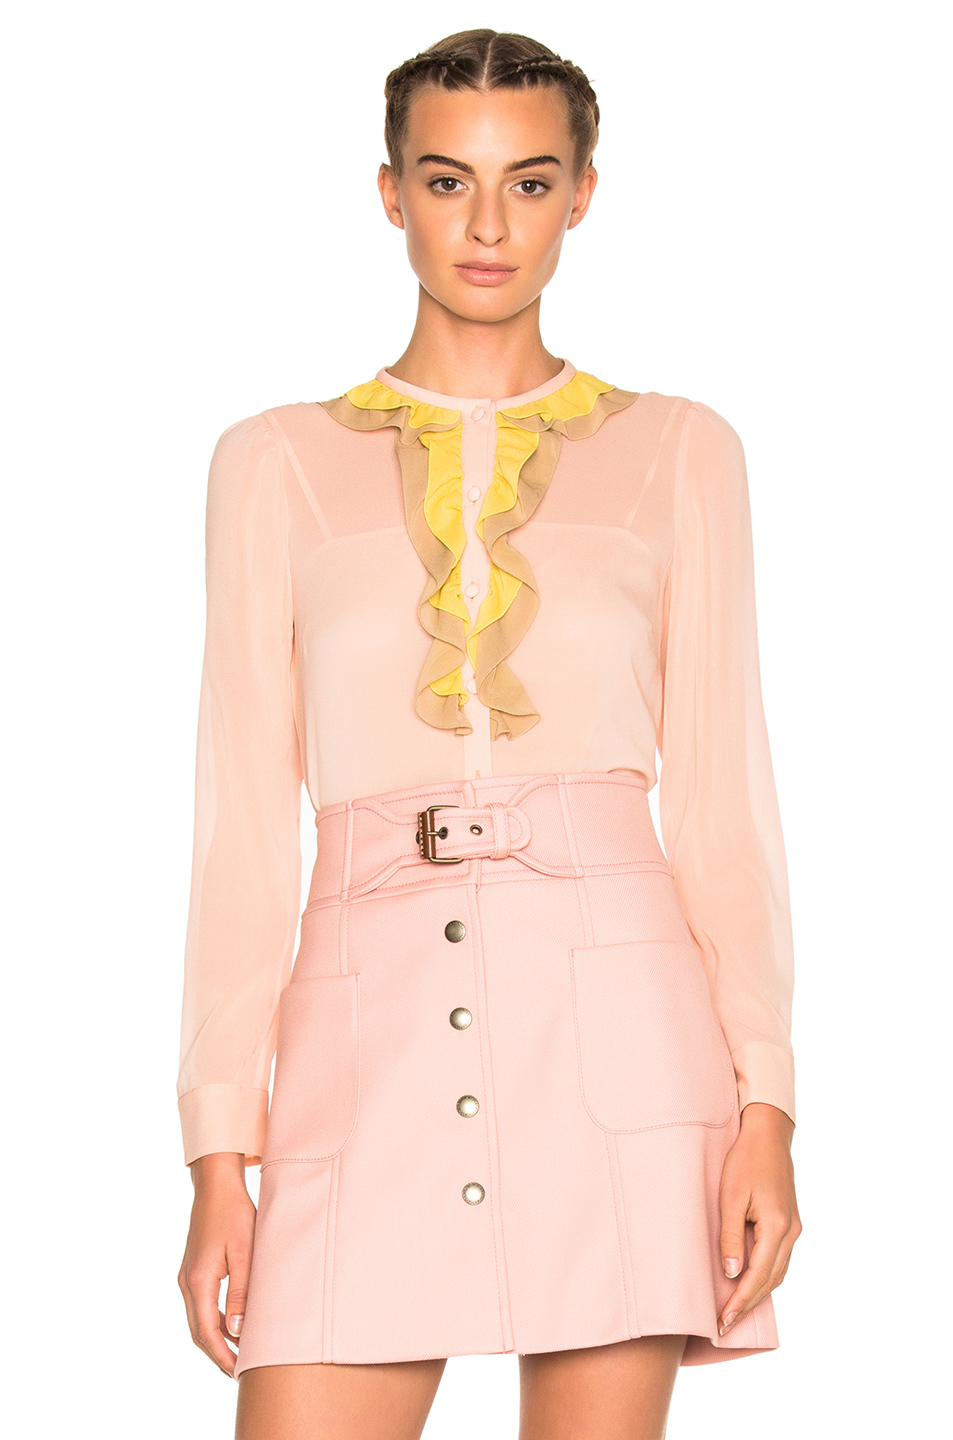 Red Valentino Ruffle Top in Pink